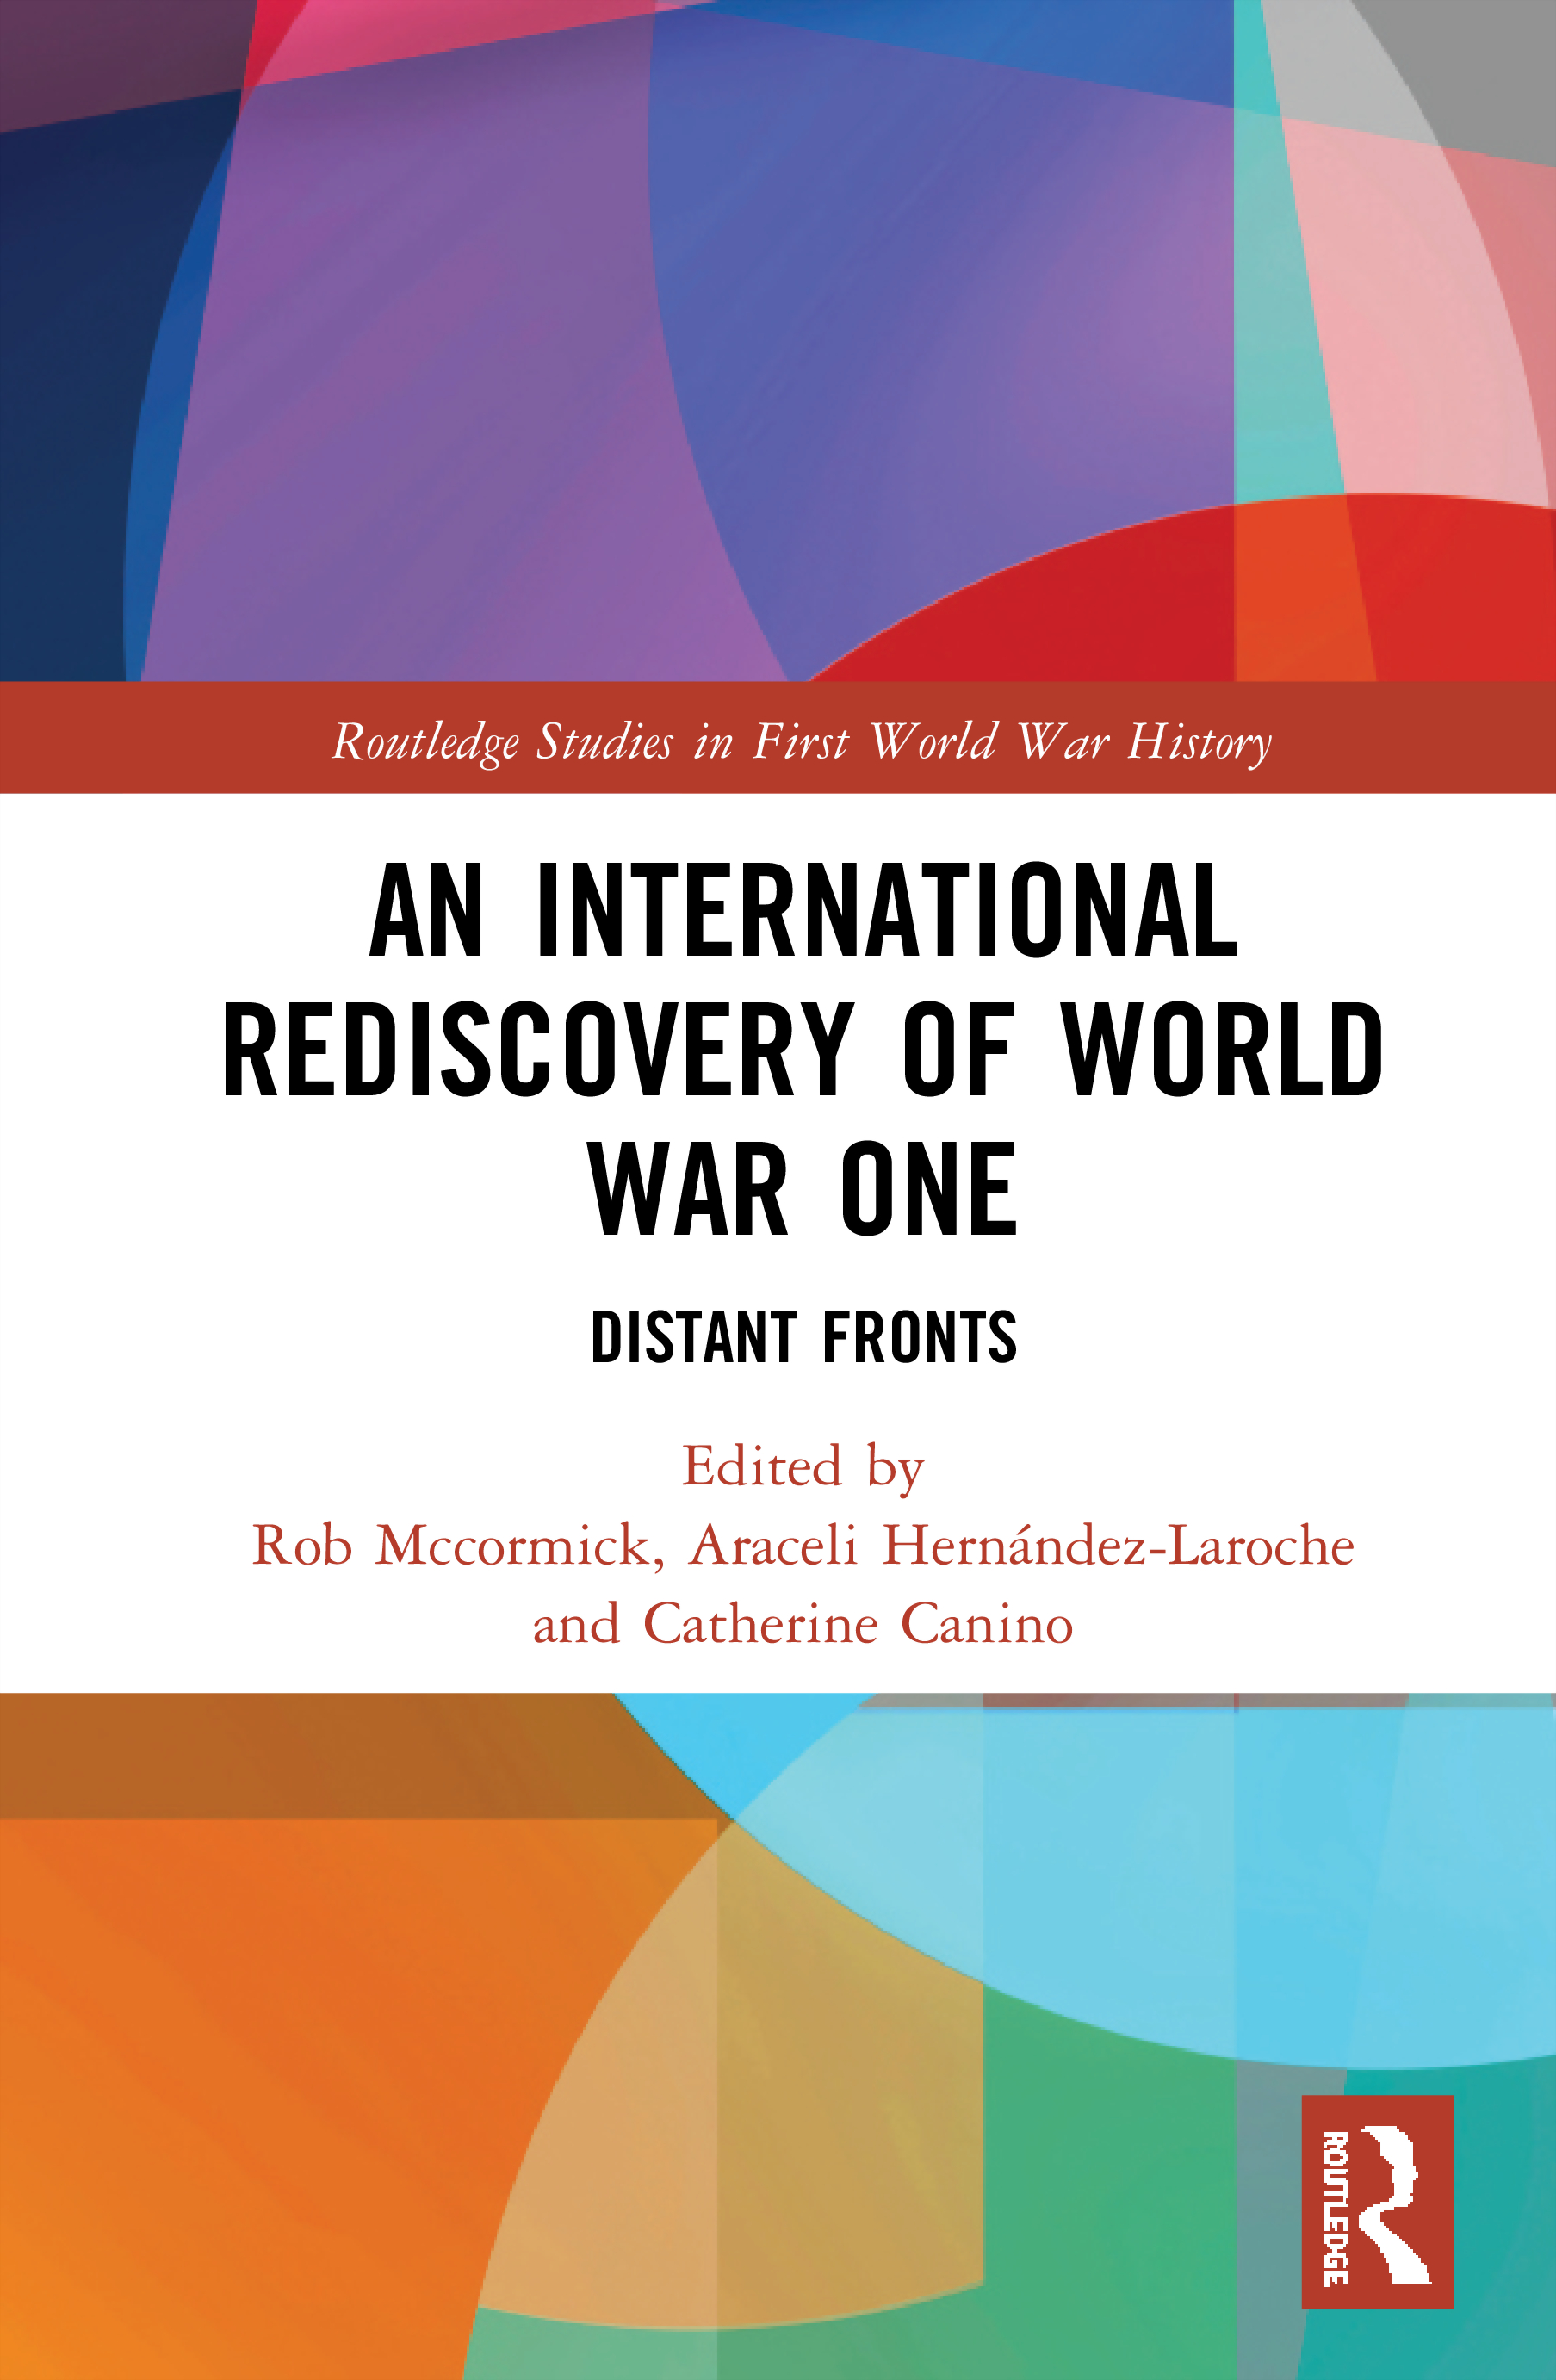 An International Rediscovery of World War One: Distant Fronts book cover